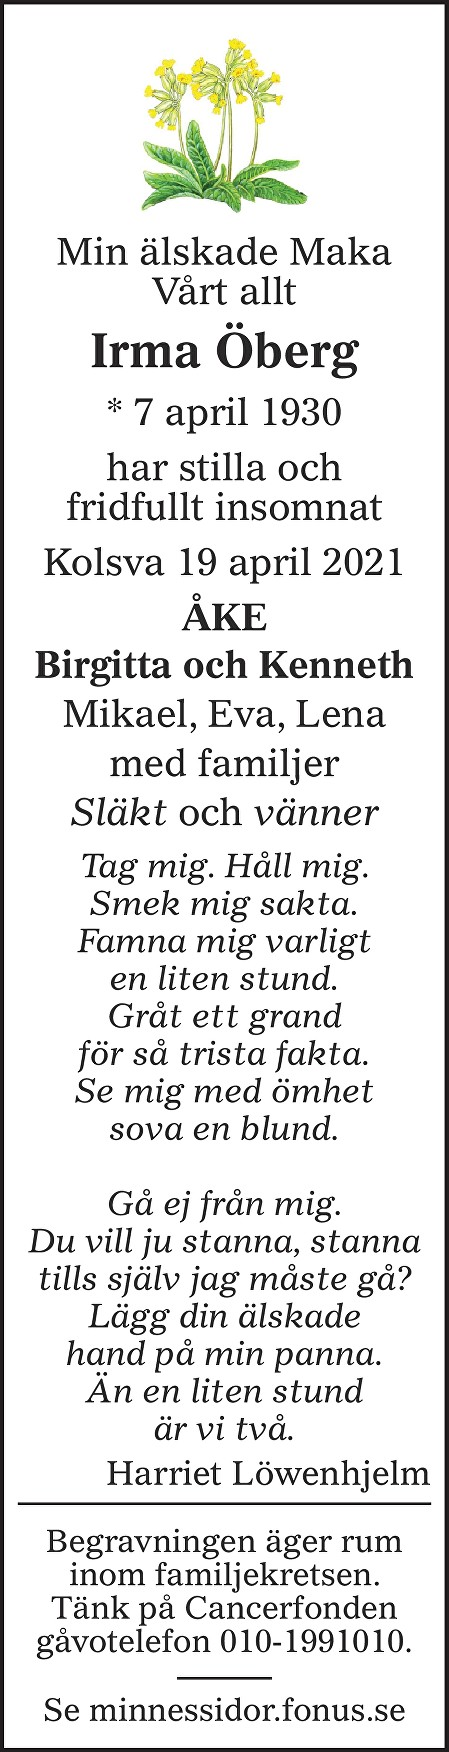 Irma Öberg Death notice